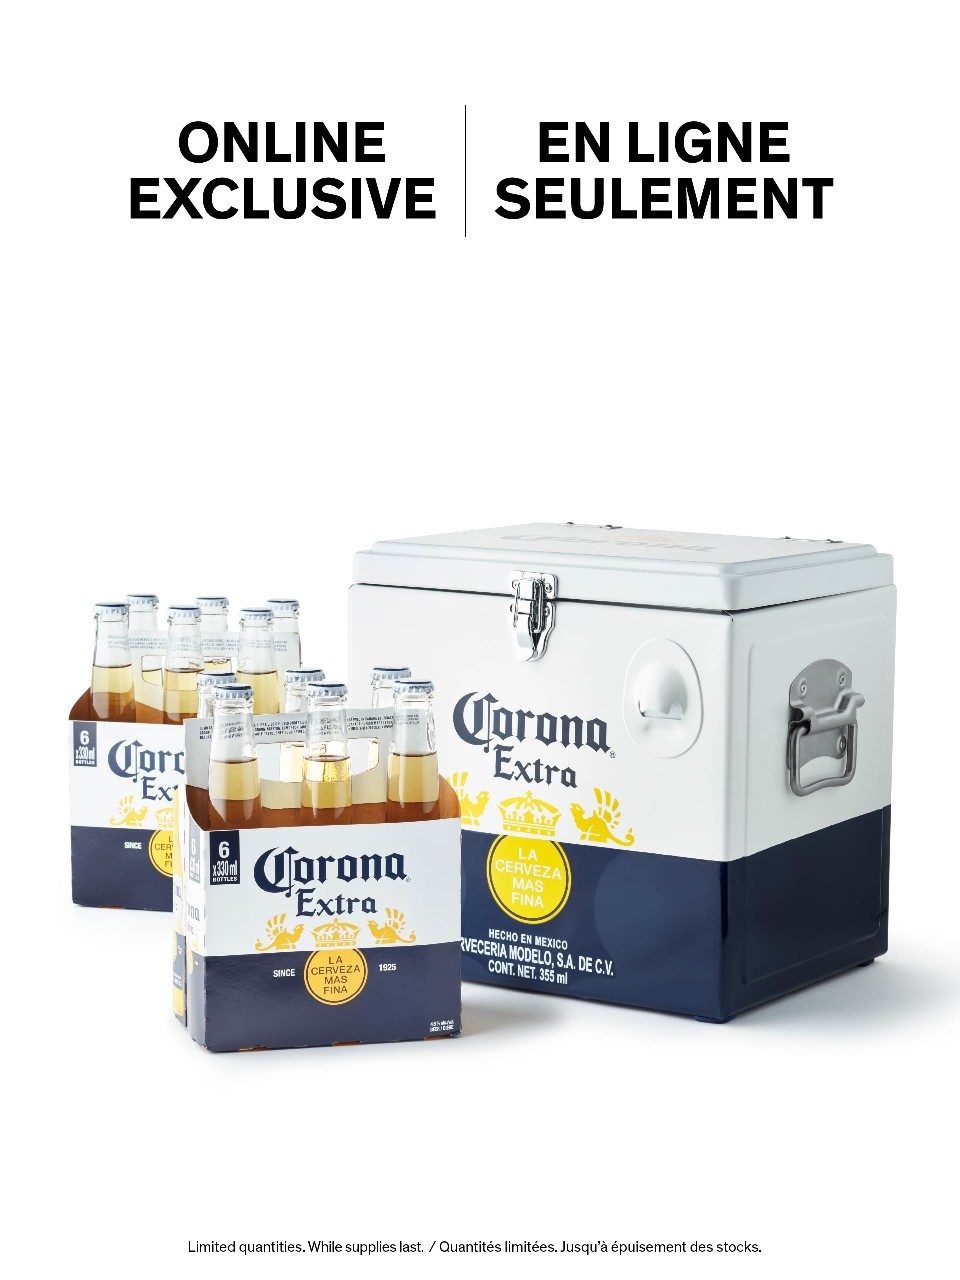 Image for Corona Vintage Cooler Online Exclusive from LCBO